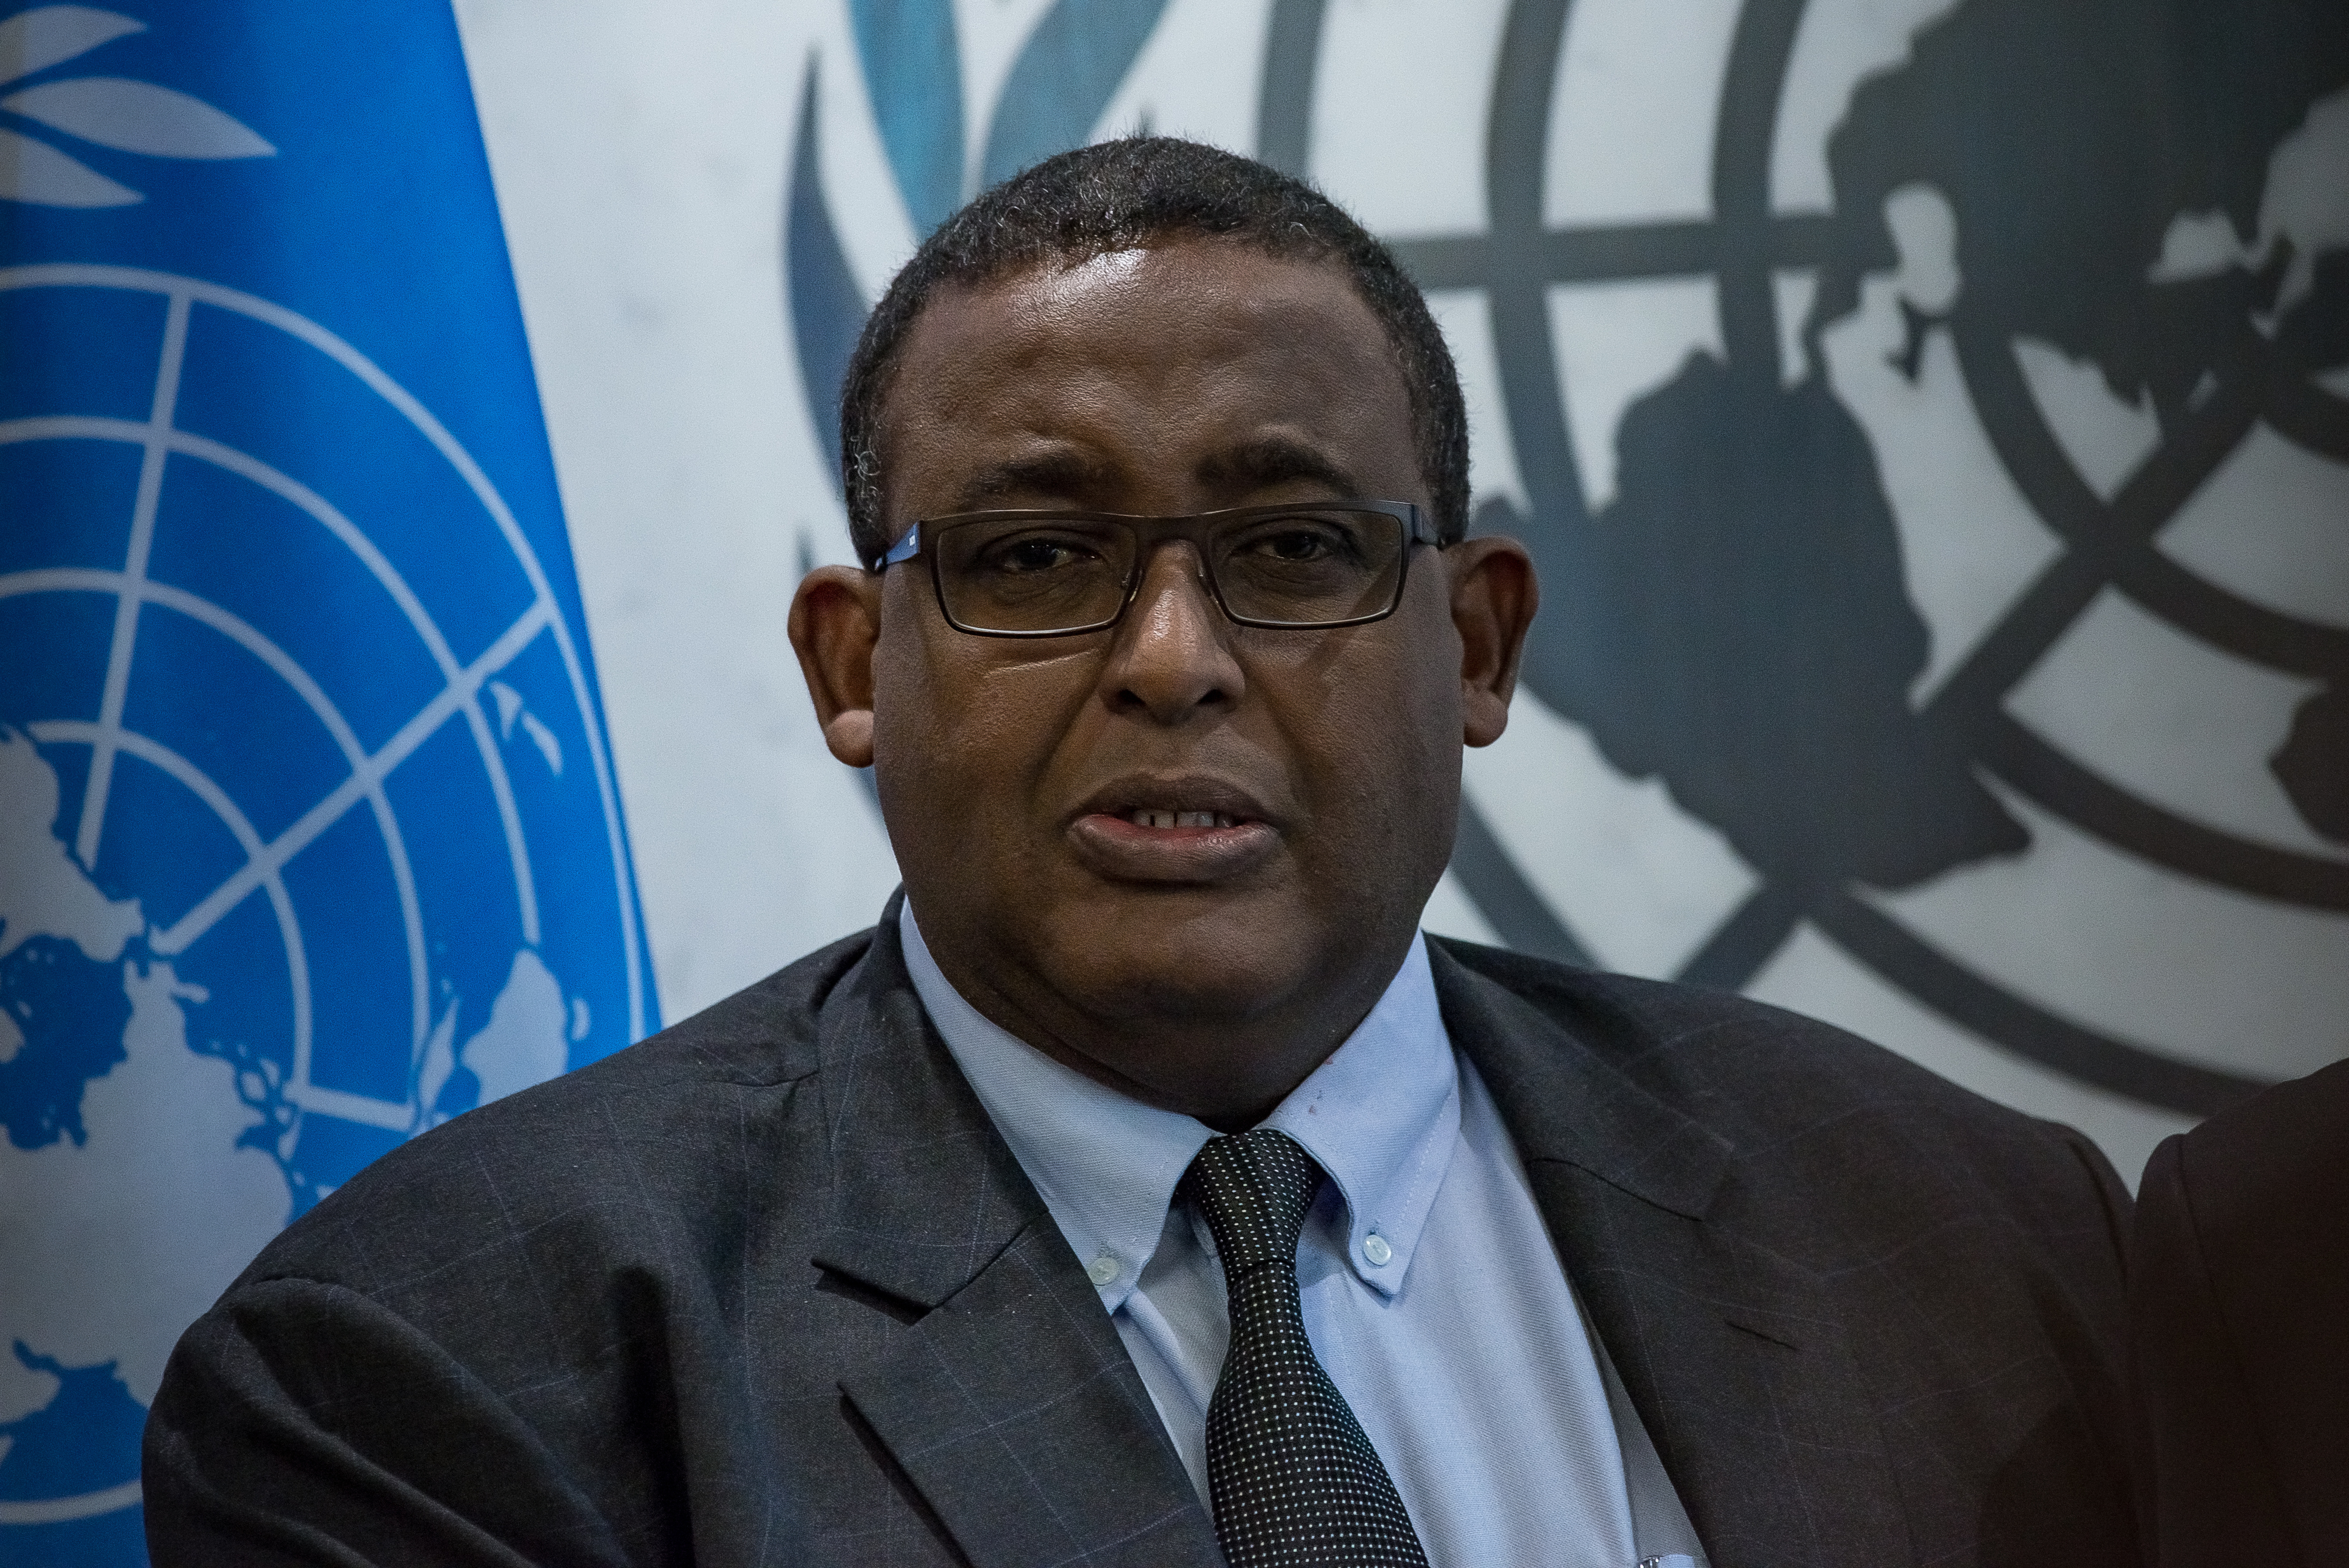 Somalian Prime Minister Omar Abdirashid Ali Sharmarke at the United Nations on October 1, 2015.